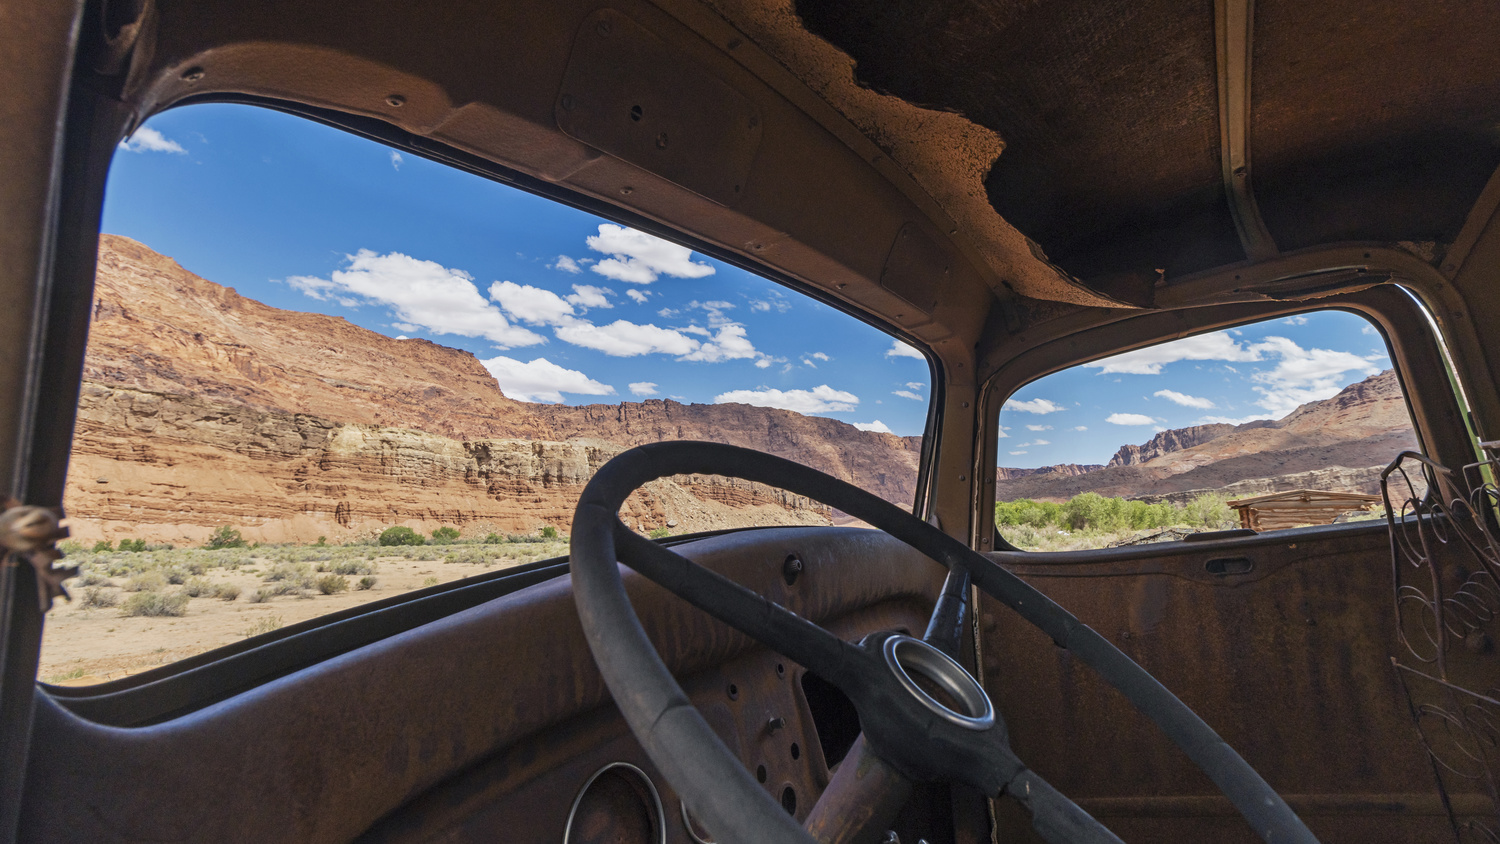 Abandoned Truck With A Red Rock View by Ray Redstone